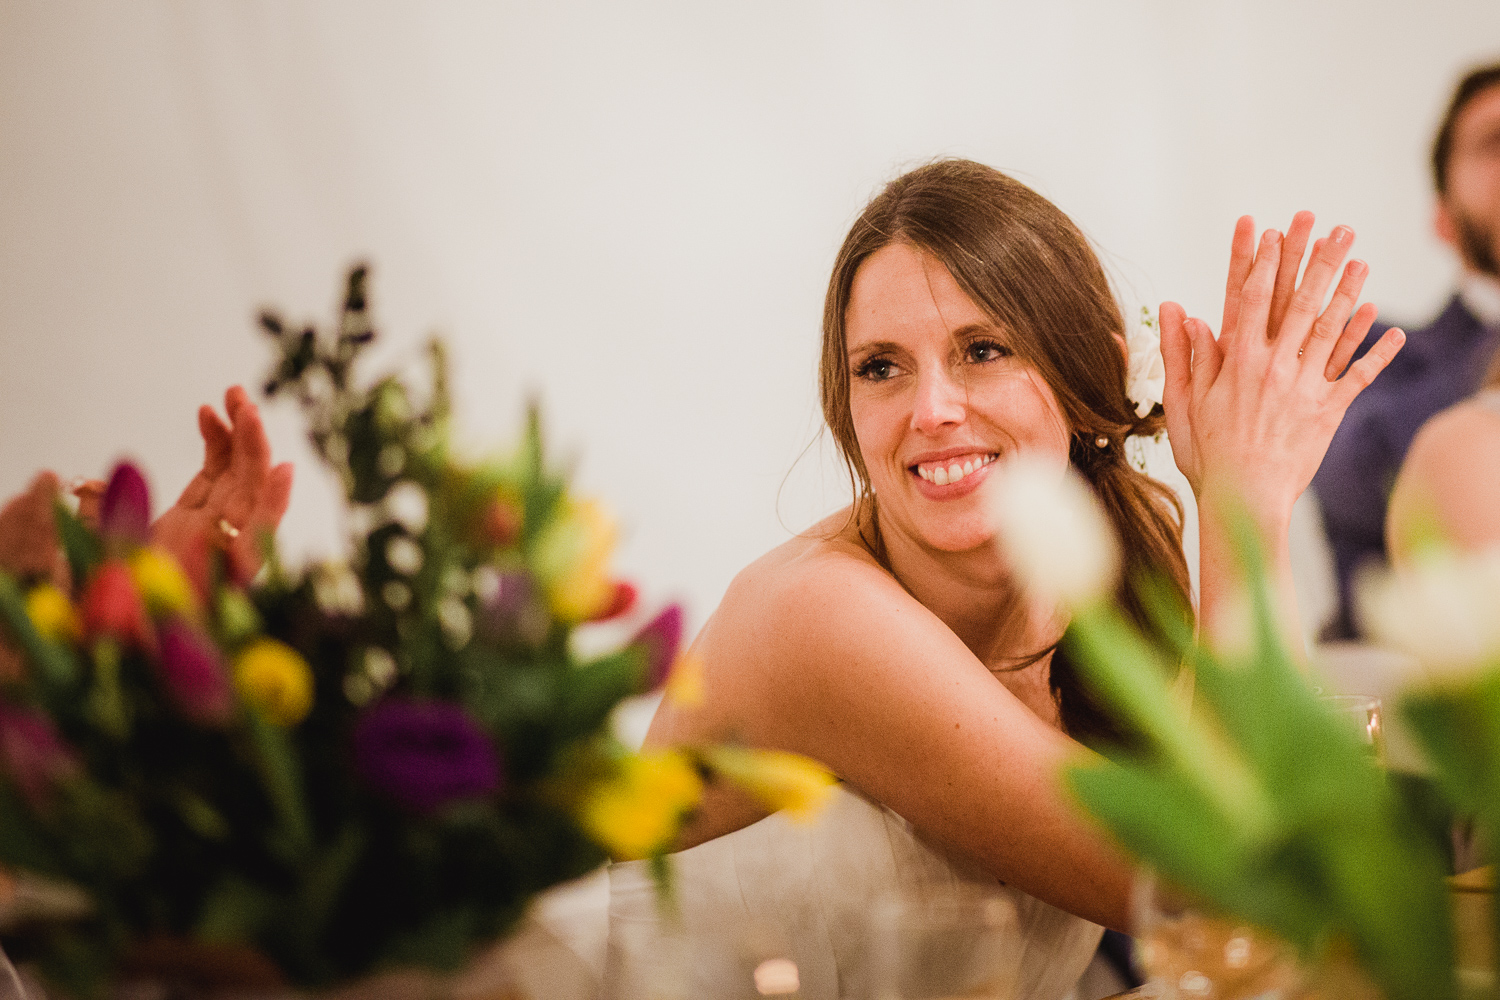 The_Old_Barn_North_Devon_Wedding_Photographer-48.jpg